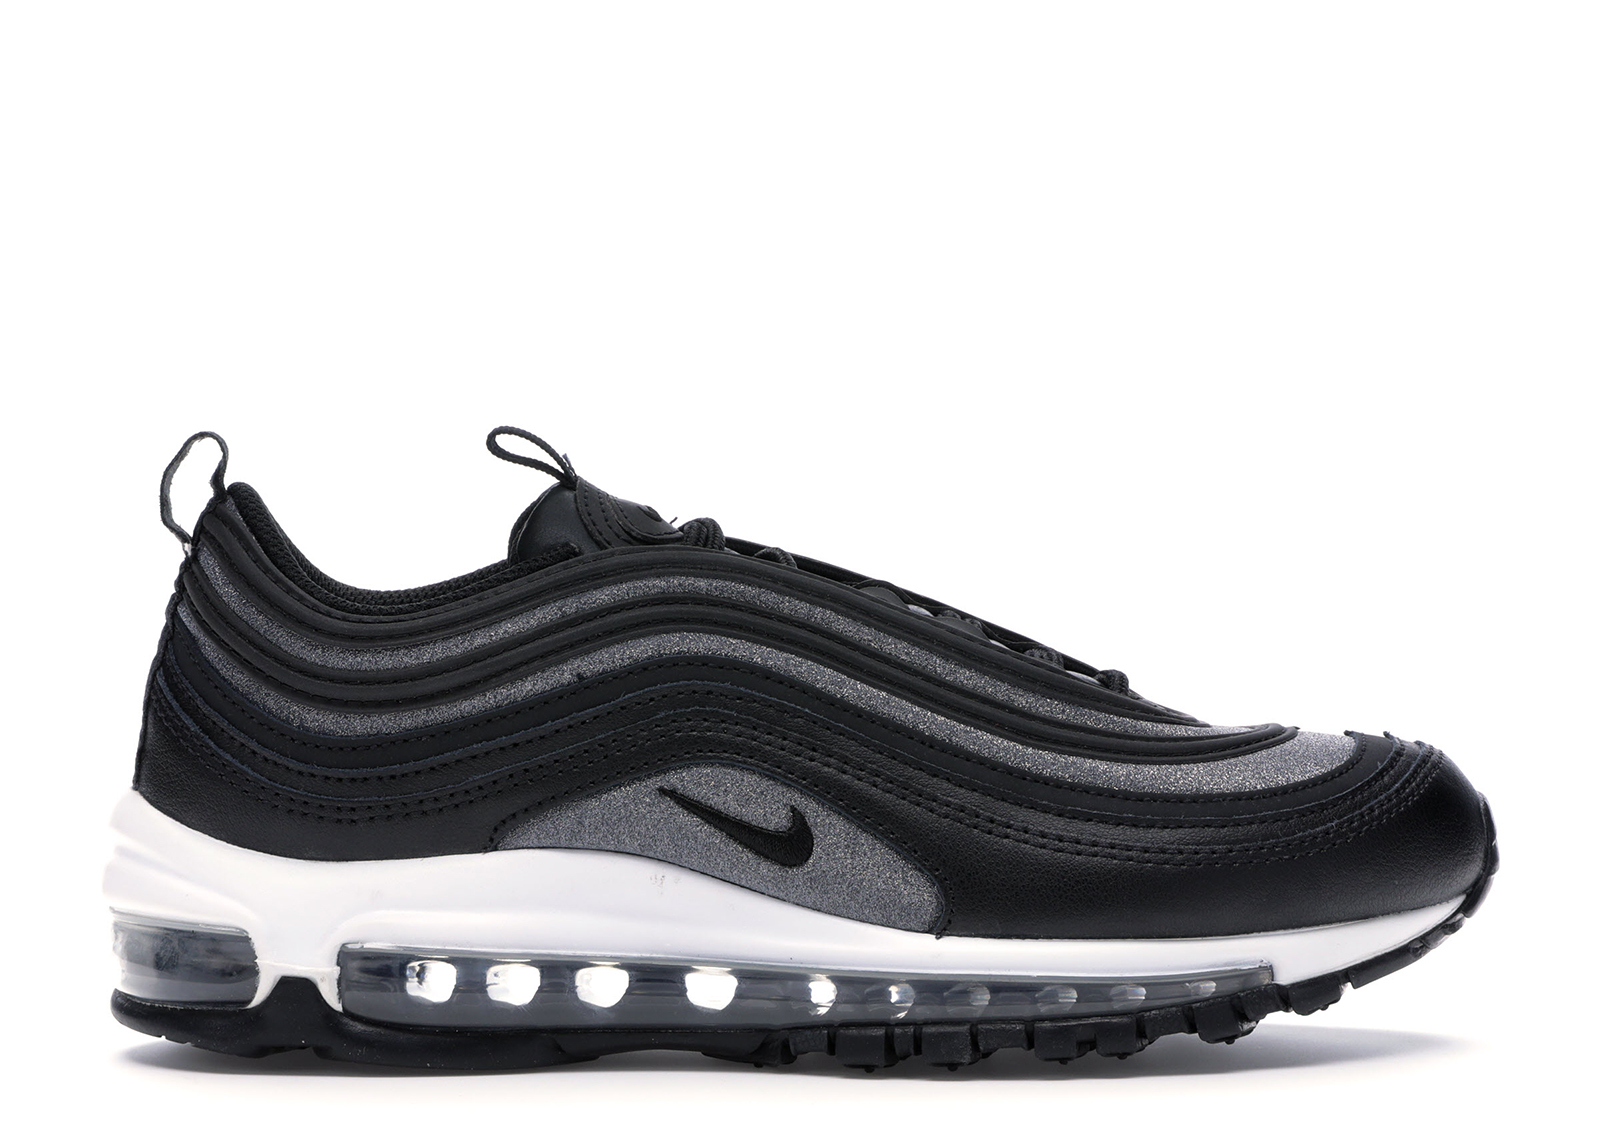 Air Max 97 Glitter Black (w) In Blackblack white dark Grey